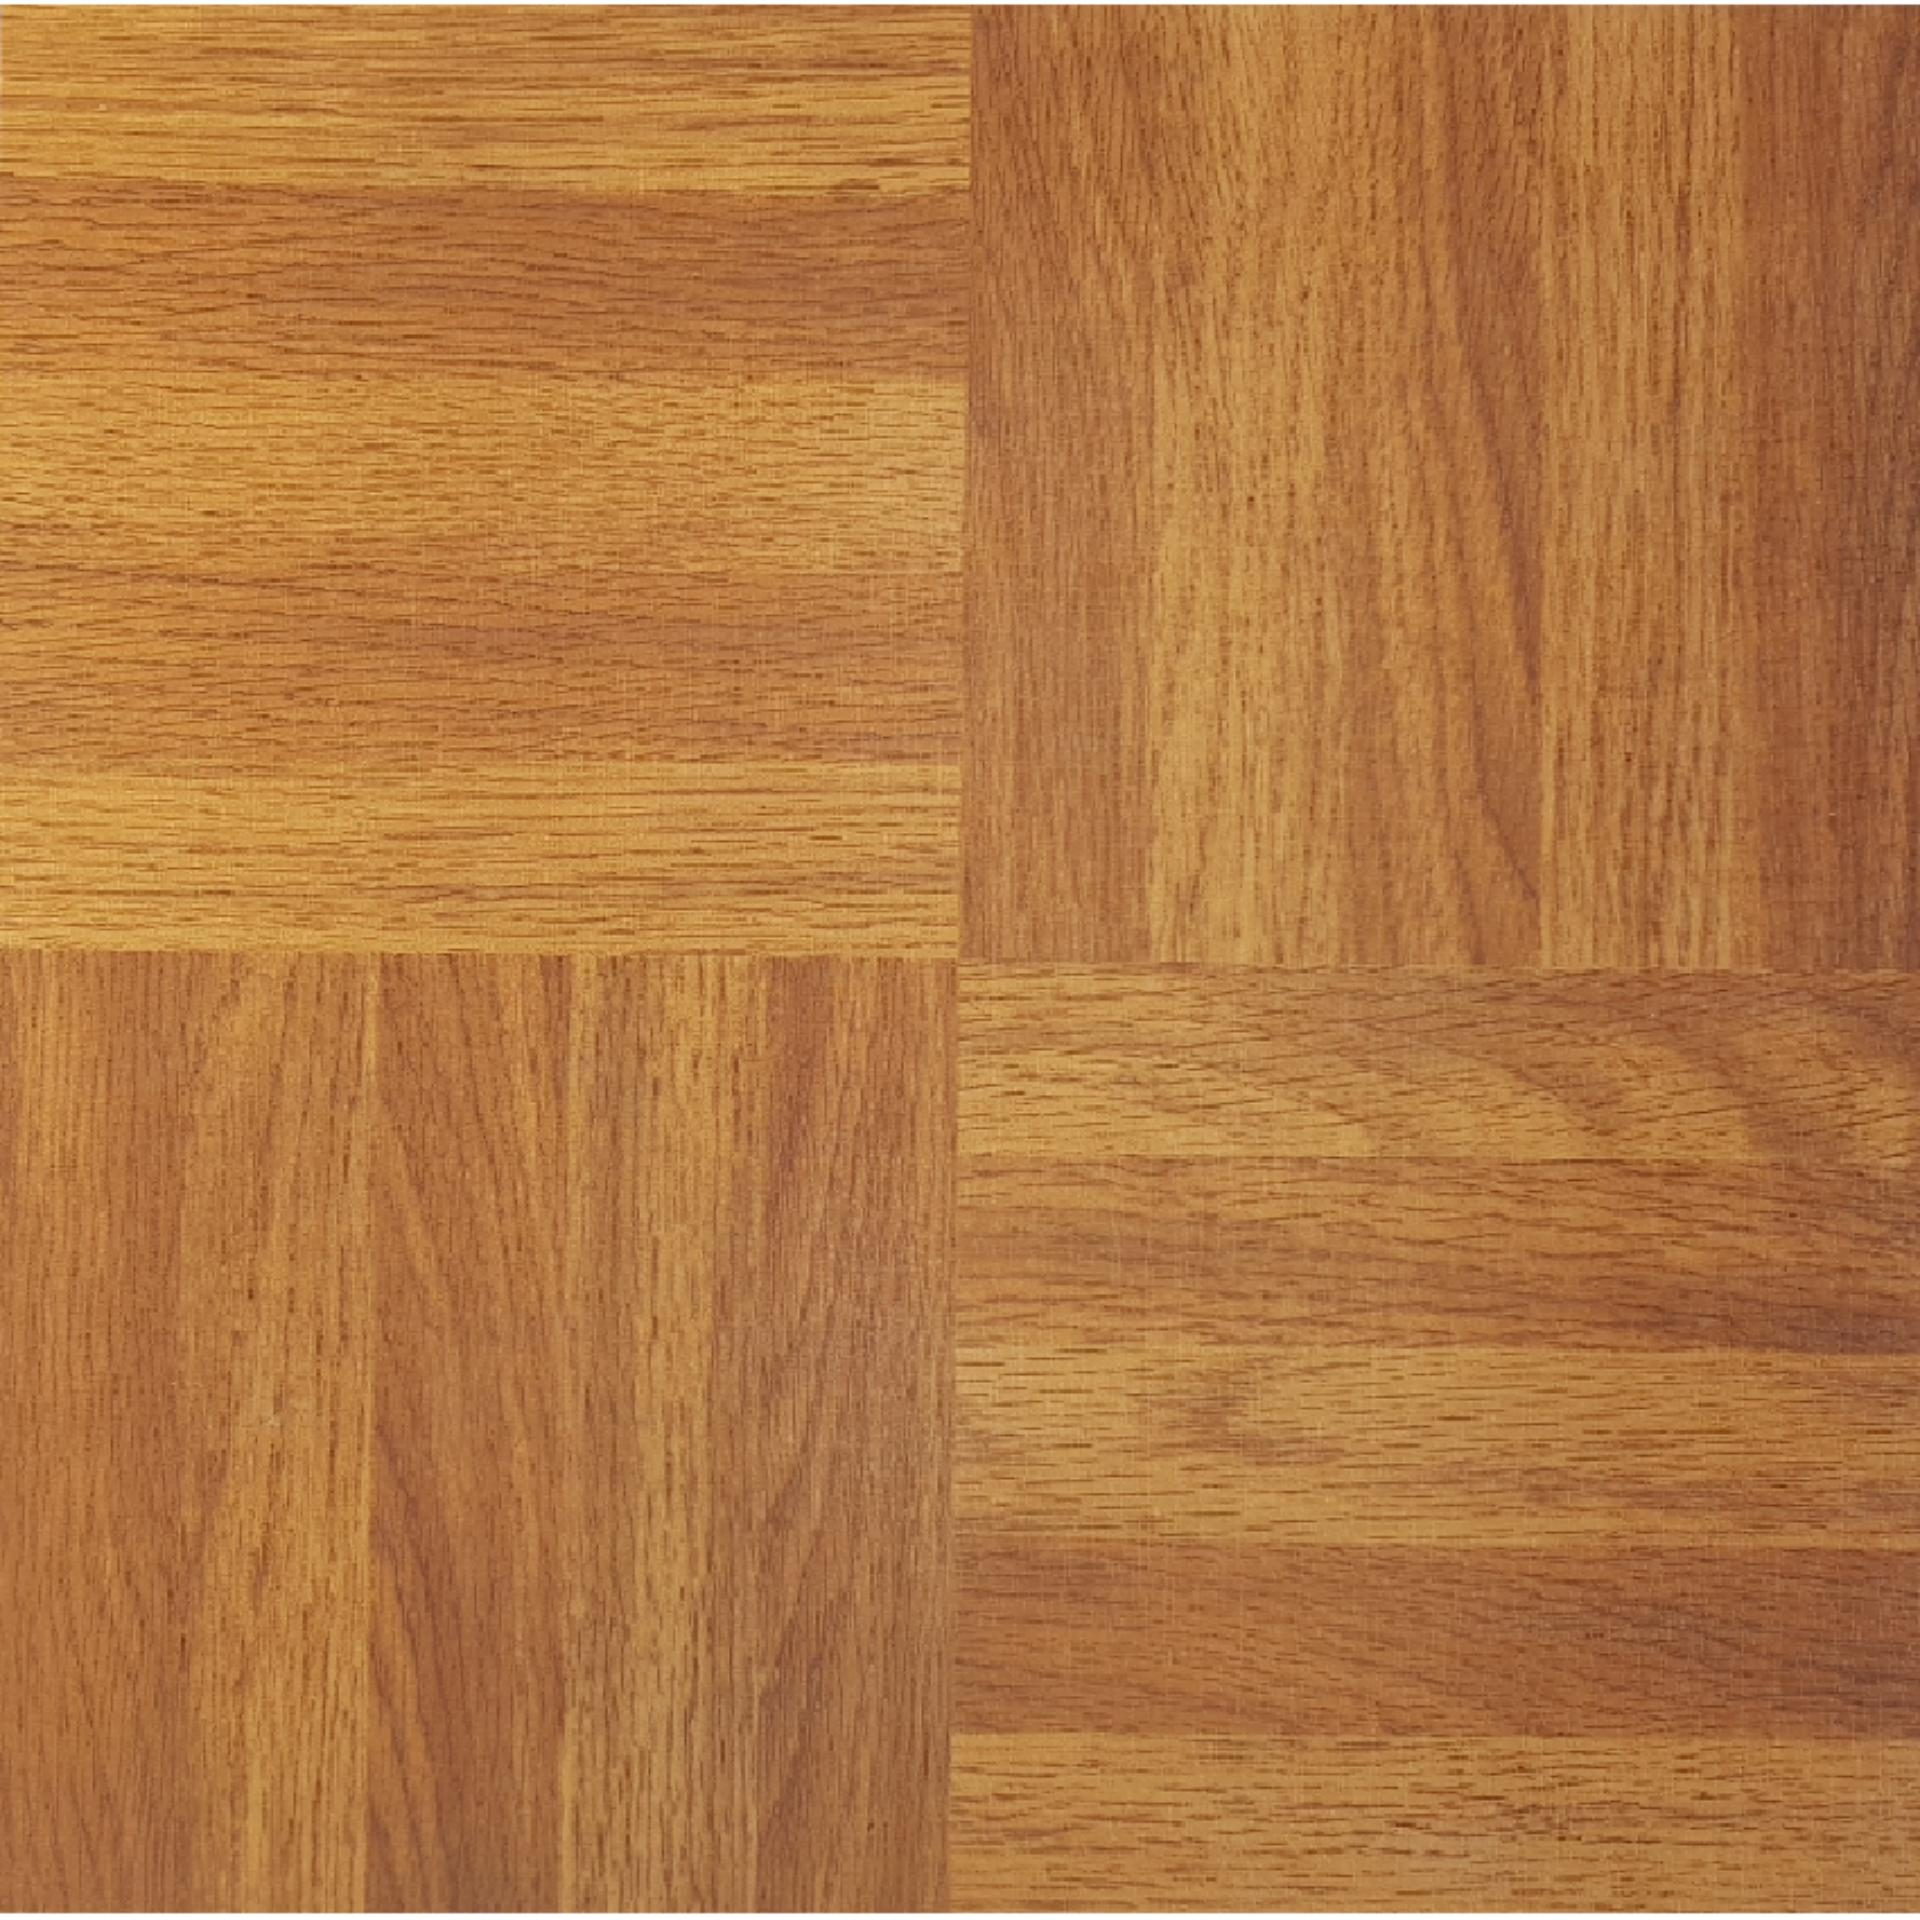 Vinyl floor tiles price philippines images tile flooring for Linoleum flooring for sale